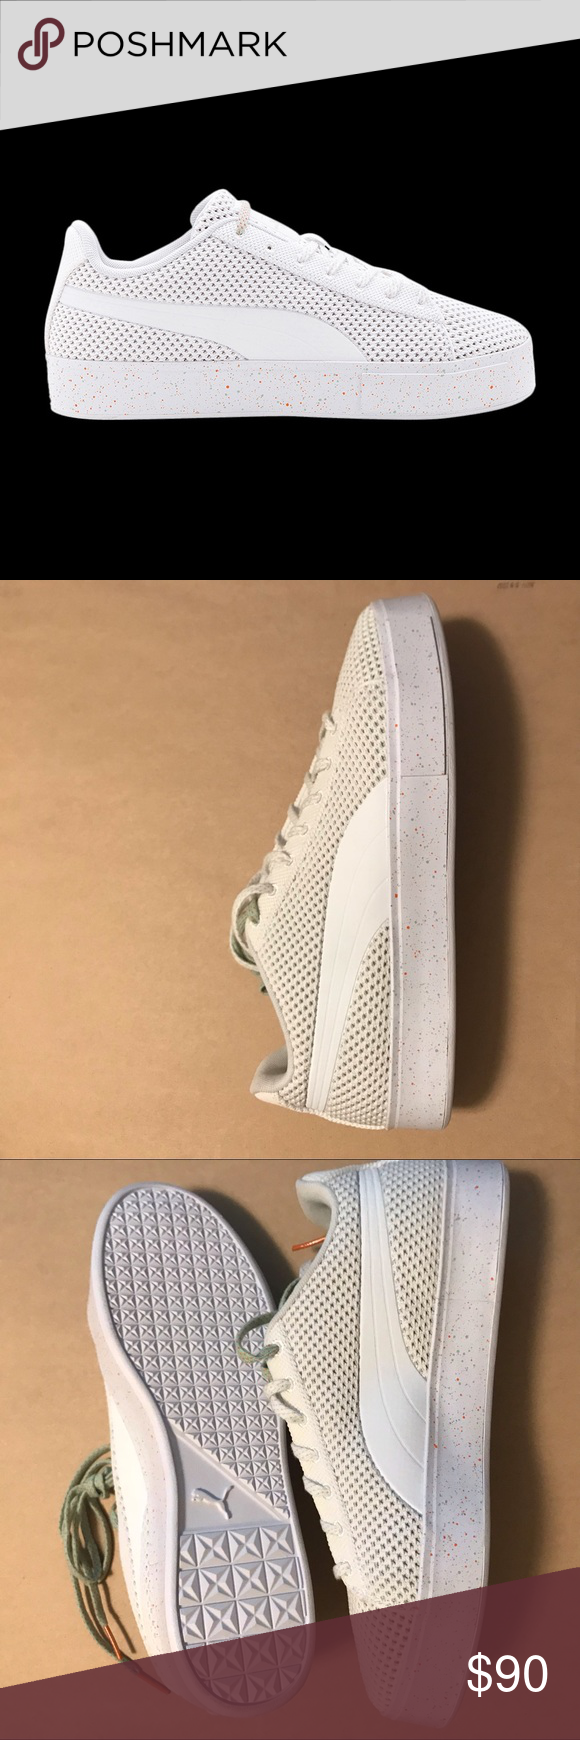 7cb68e68edf459 Puma X Daily Paper men New Brand new Puma Daily Paper Court Platform  Knitsplat Fashion sneakers Size 11 men Never been used send an offer Puma  Shoes ...